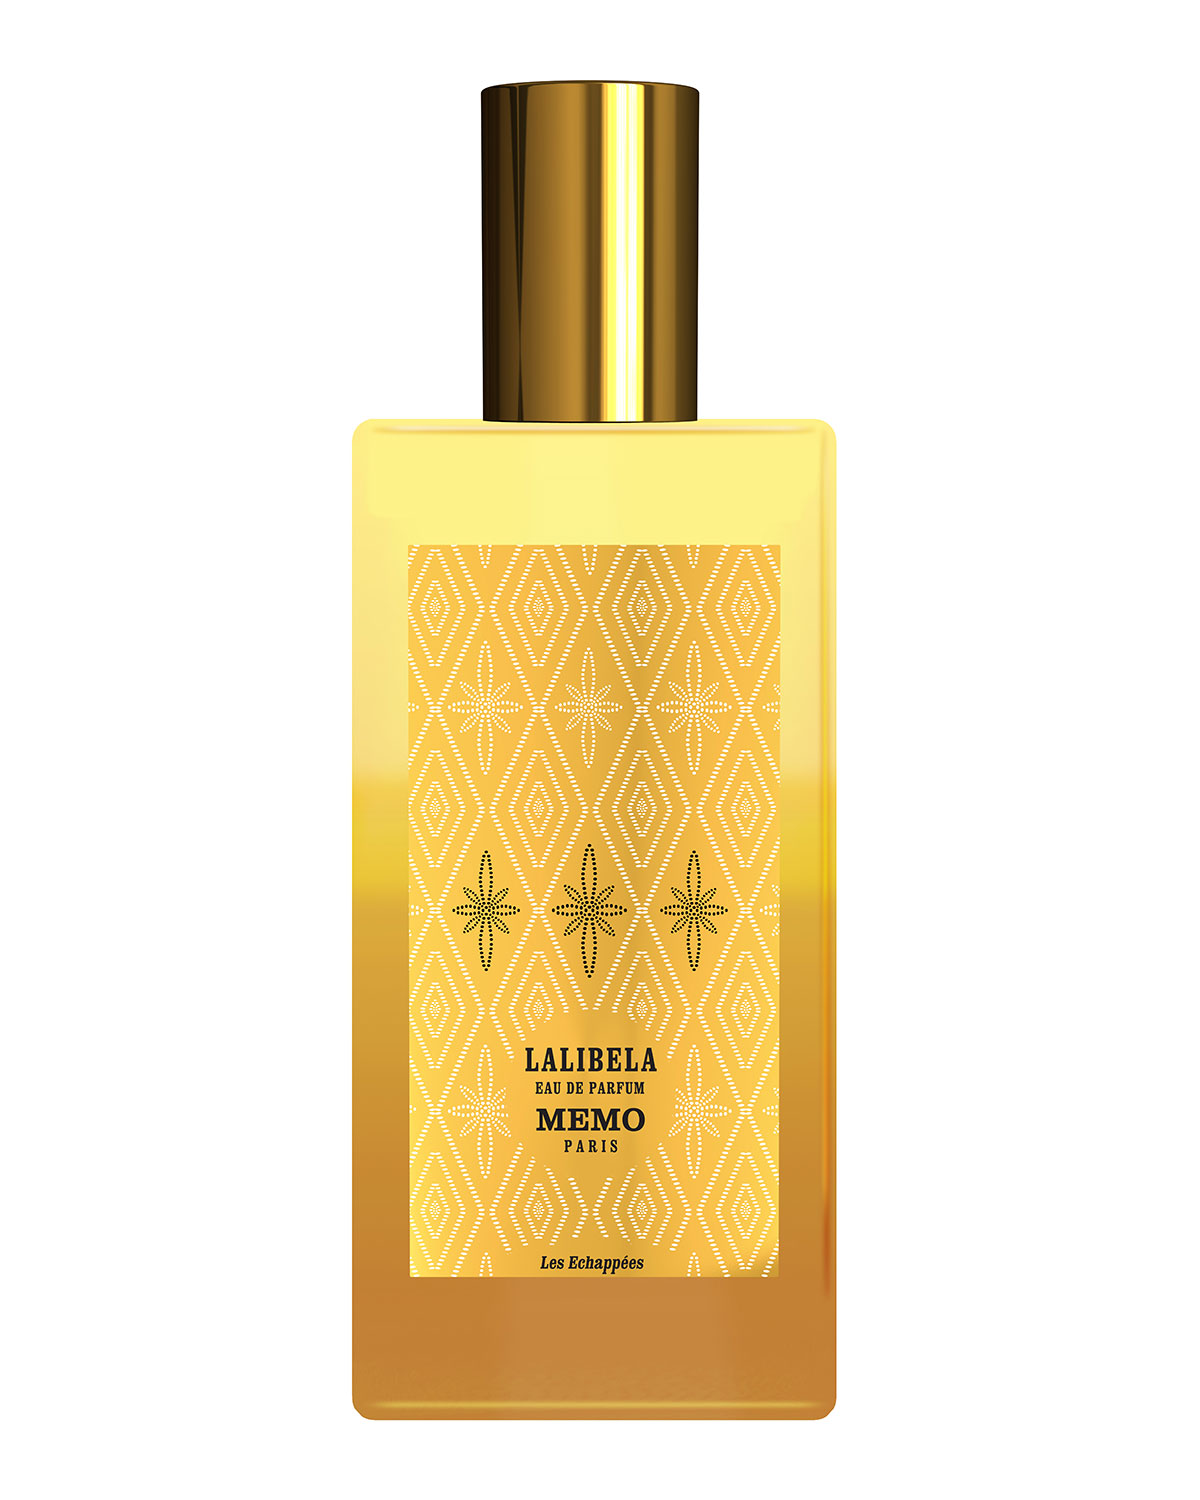 MEMO PARIS Lalibela Eau De Parfum Spray, 200 Ml/ 7.0 Oz.